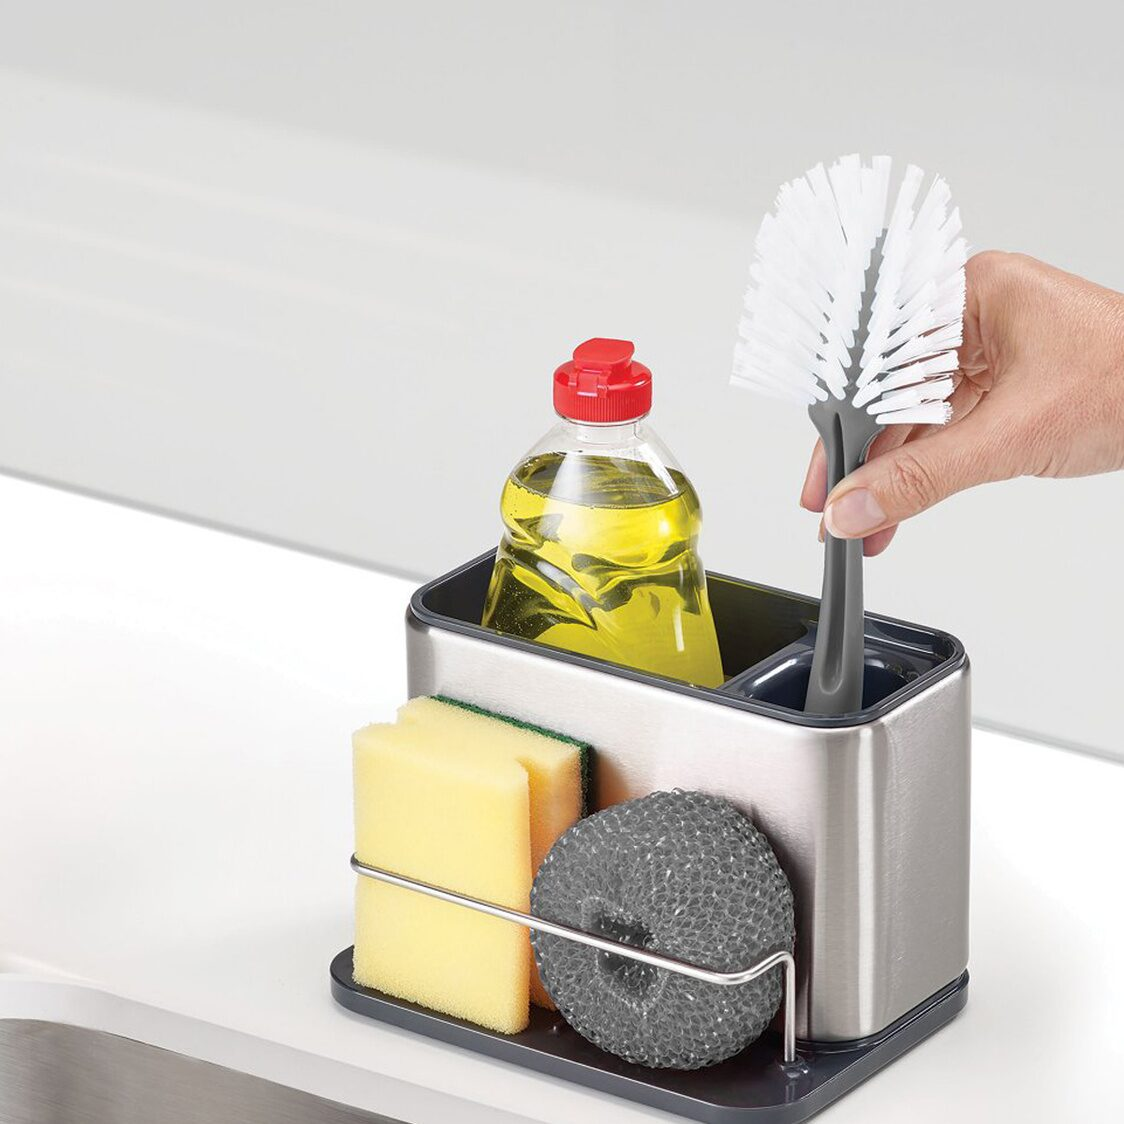 Surface 1810 Stainless Steel Sink Tidy